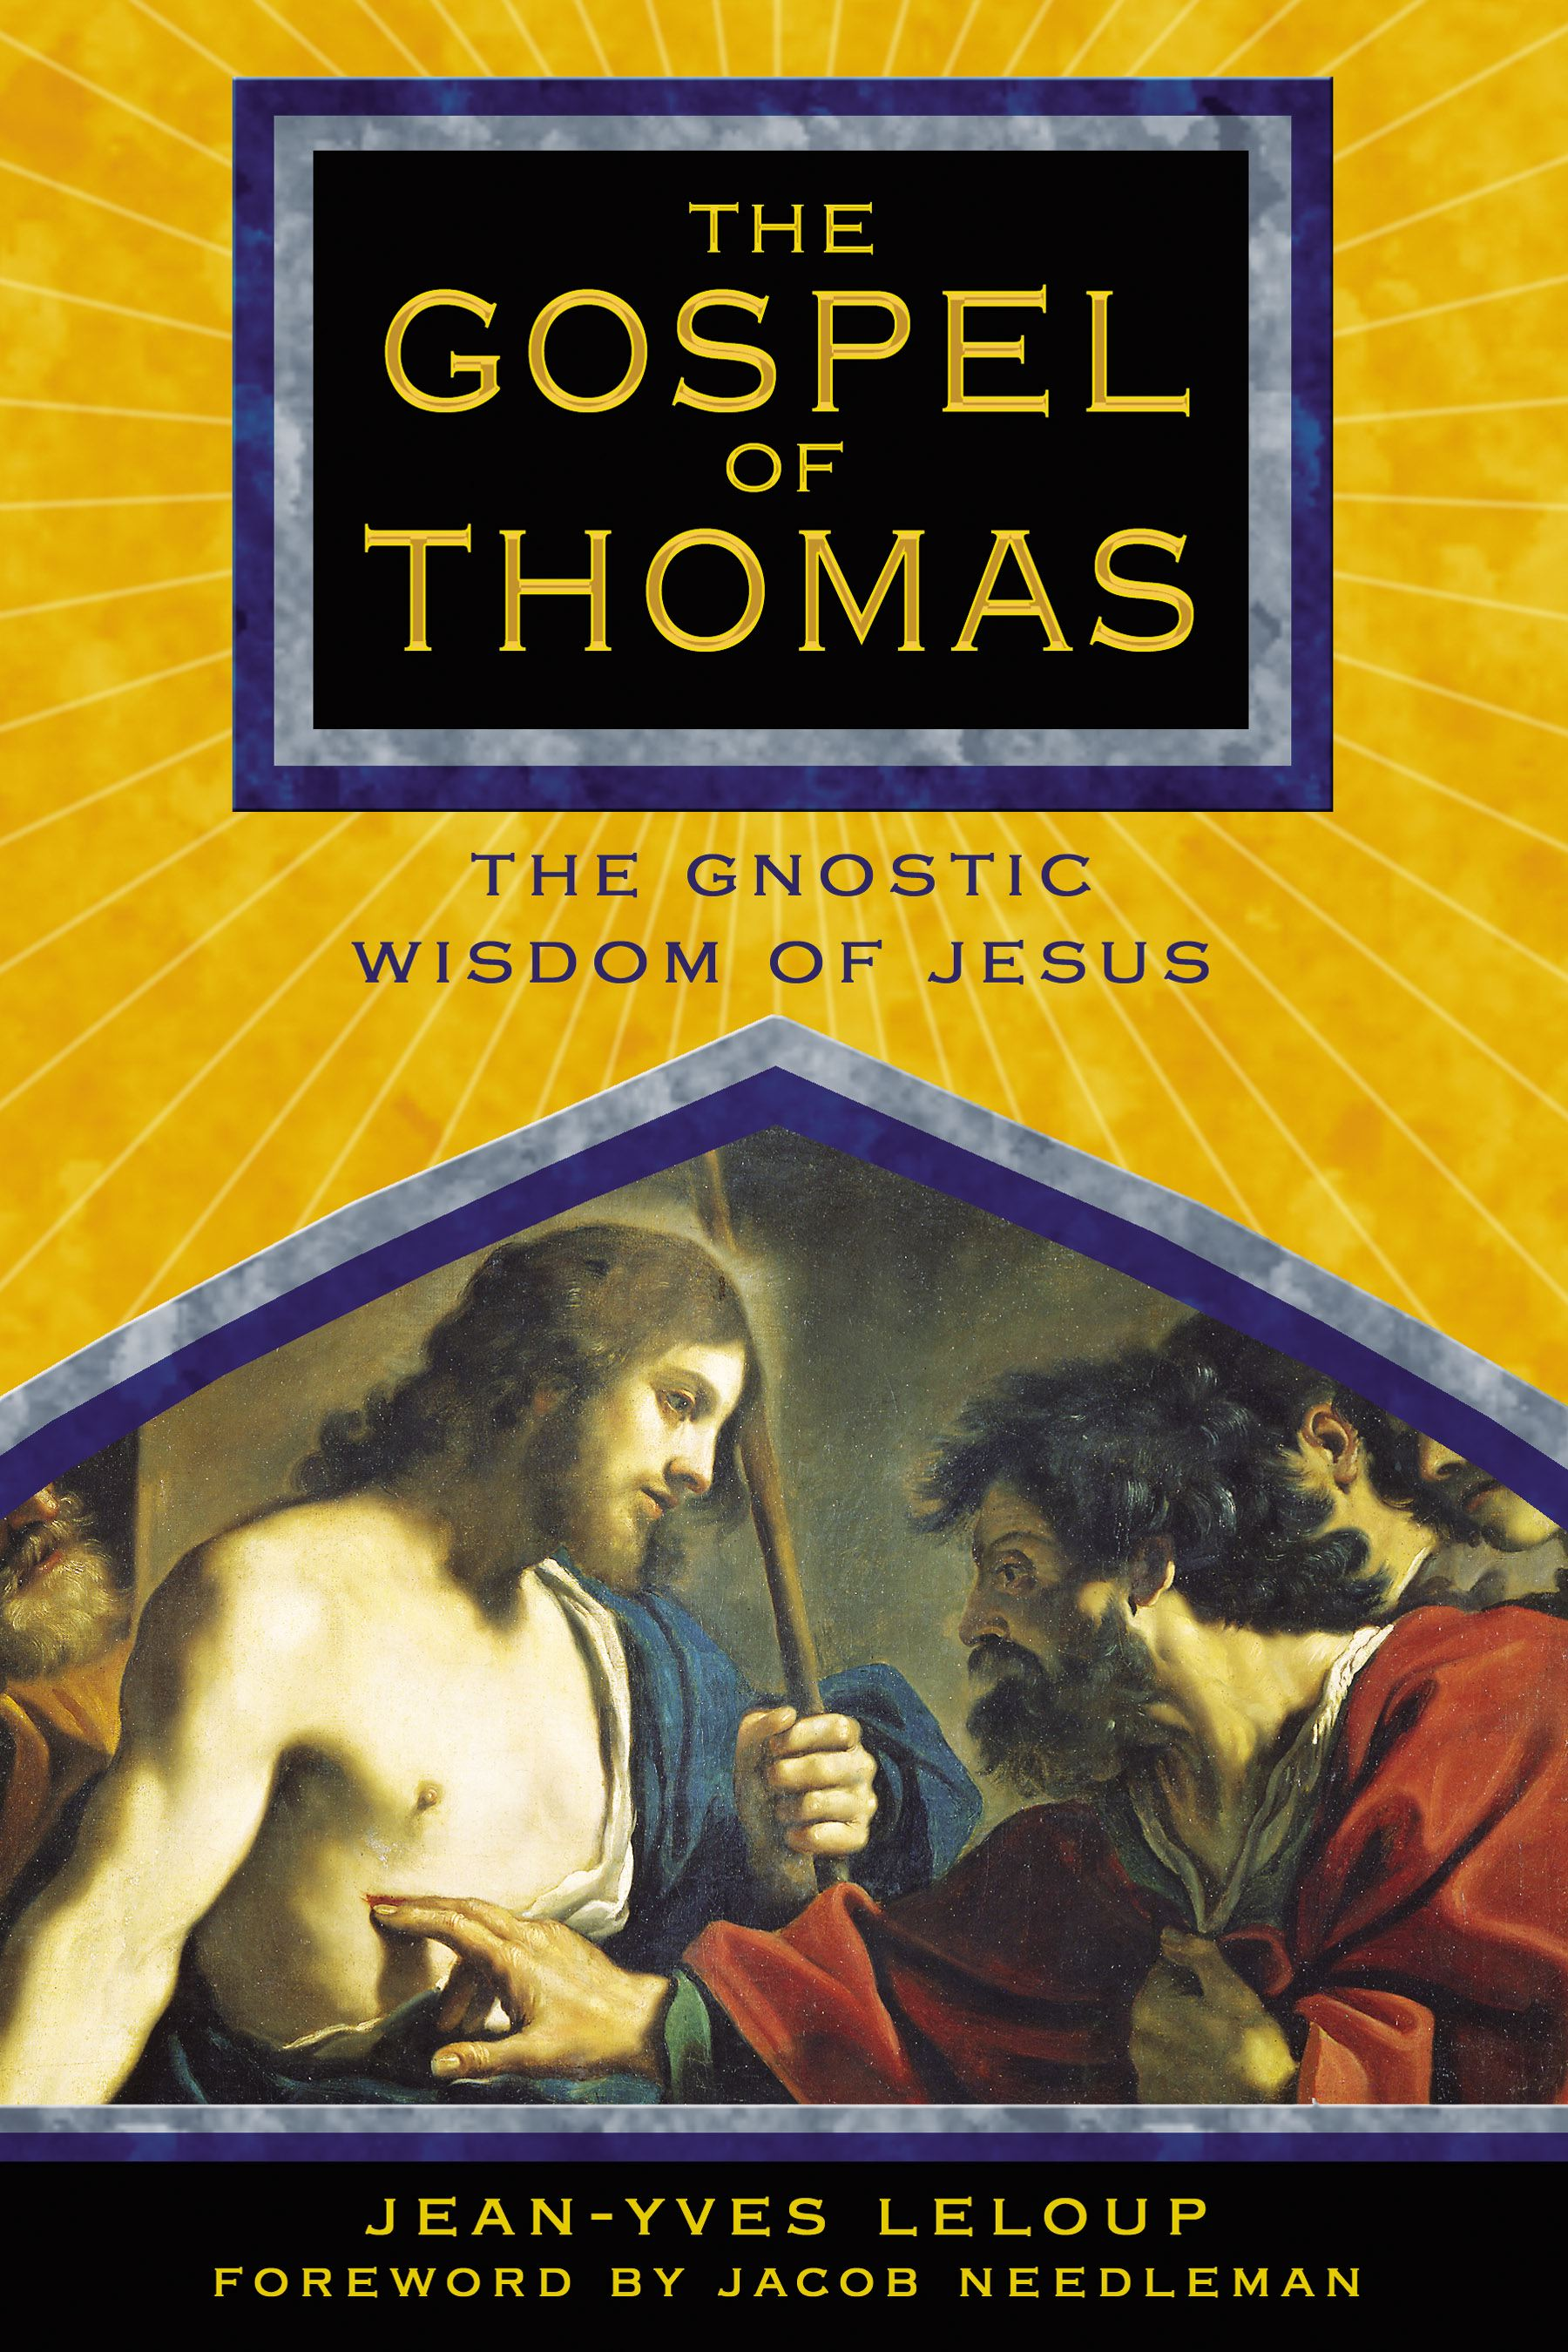 The gospel of thomas 9781594770463 hr